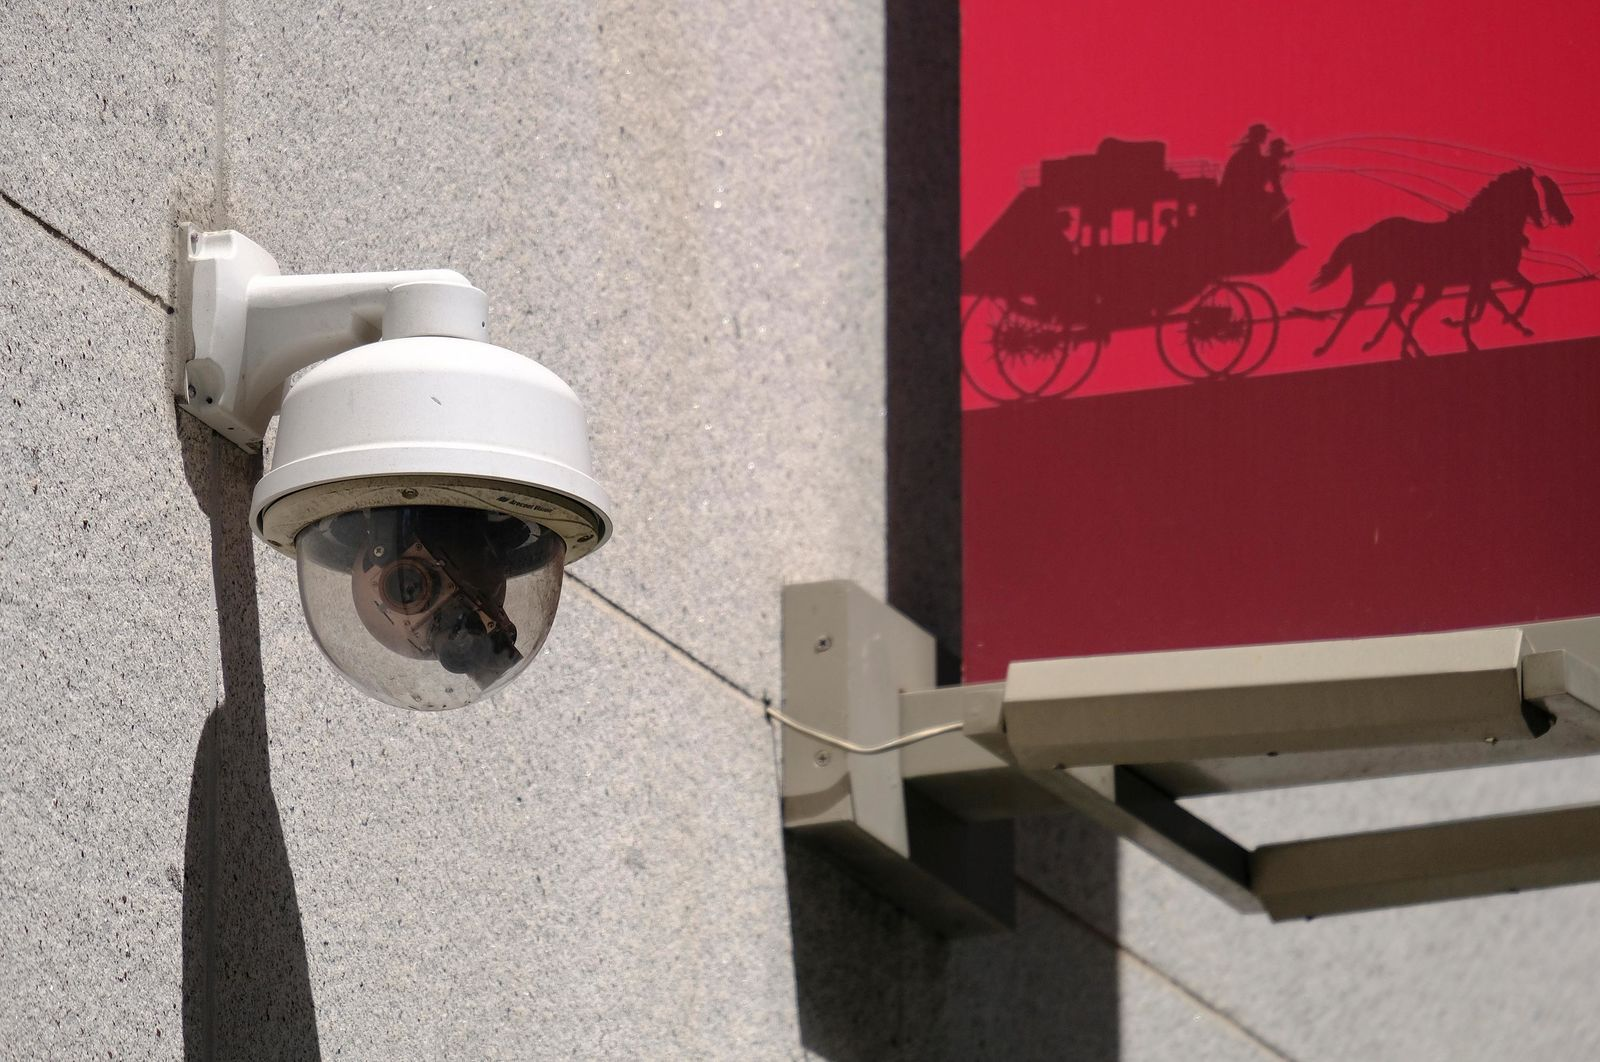 This photo taken Tuesday, May 7, 2019, shows a security camera in the Financial District of San Francisco. San Francisco is on track to become the first U.S. city to ban the use of facial recognition by police and other city agencies as the technology creeps increasingly into daily life. (AP Photo/Eric Risberg)